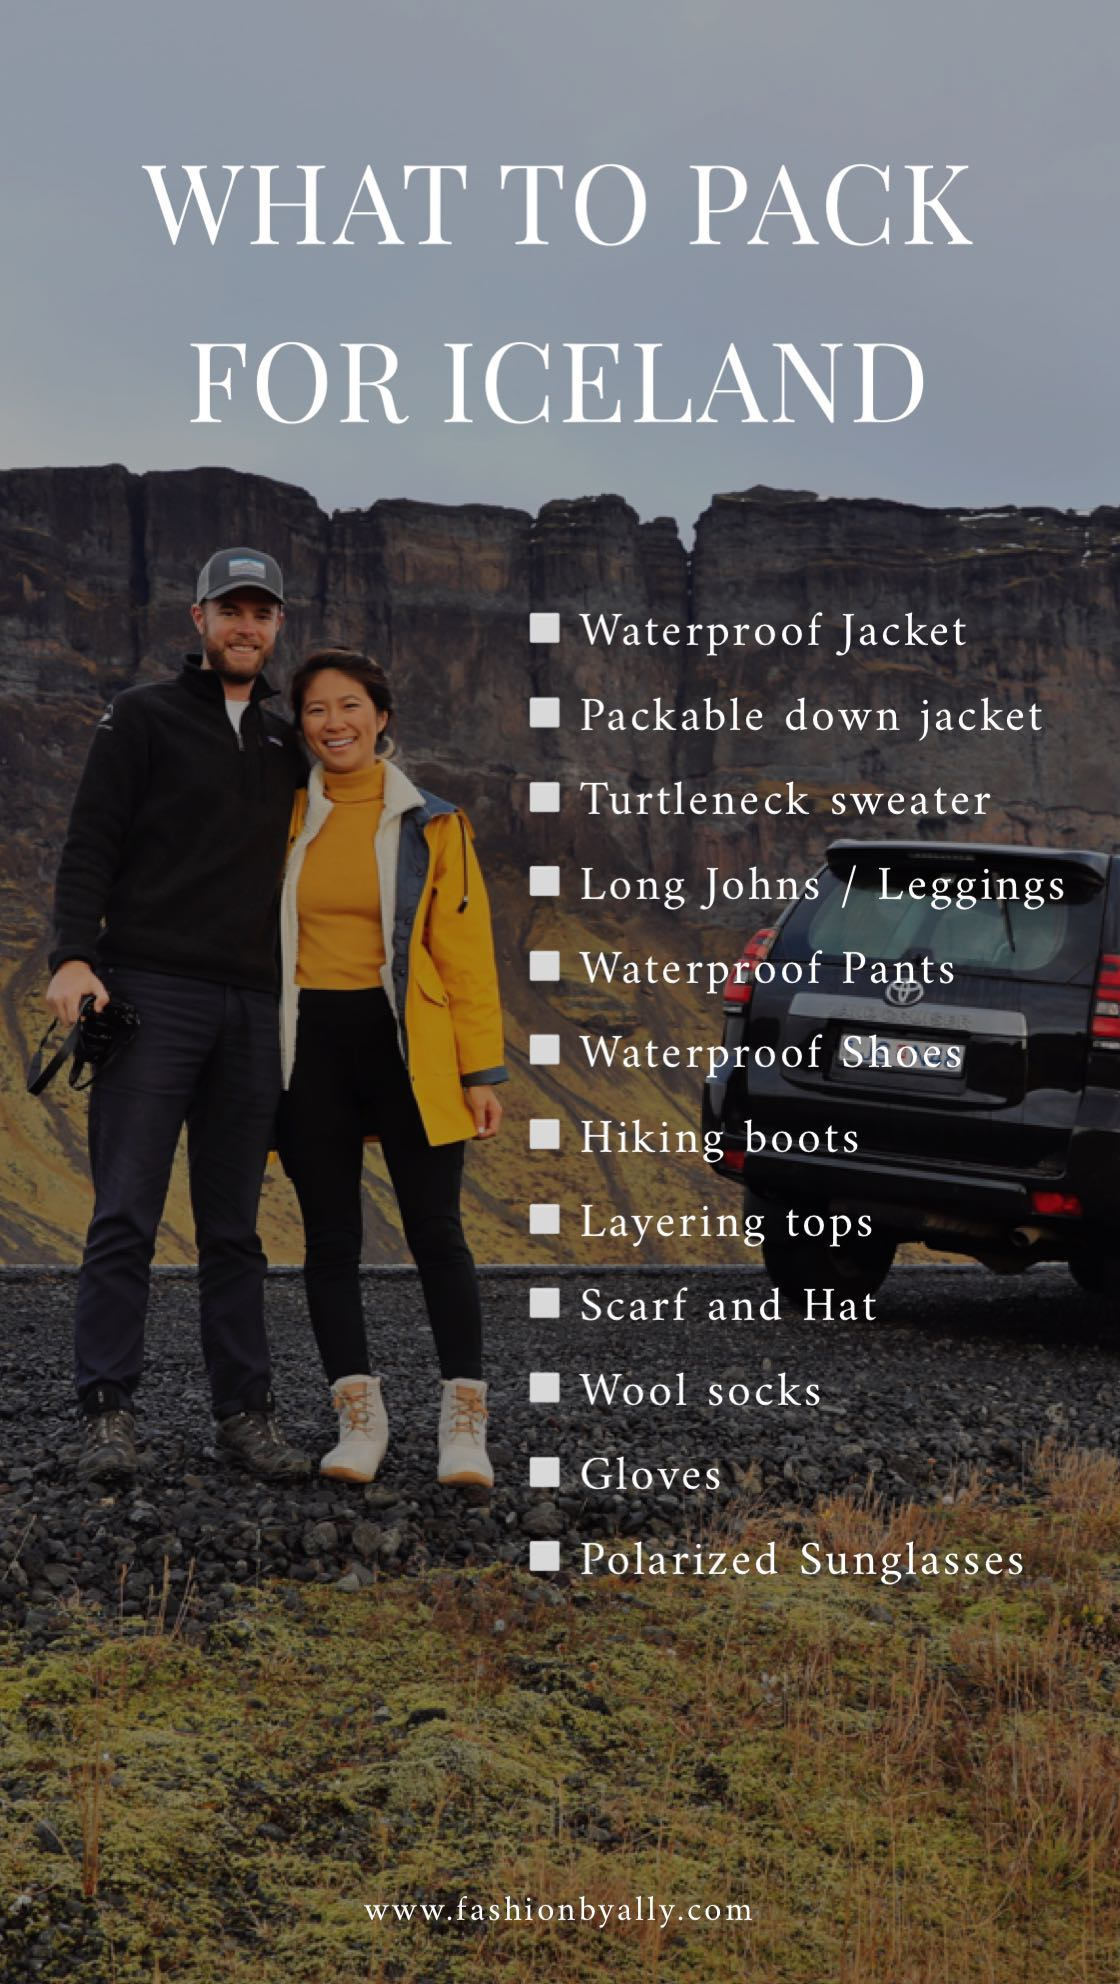 What to Pack for Iceland2.JPG